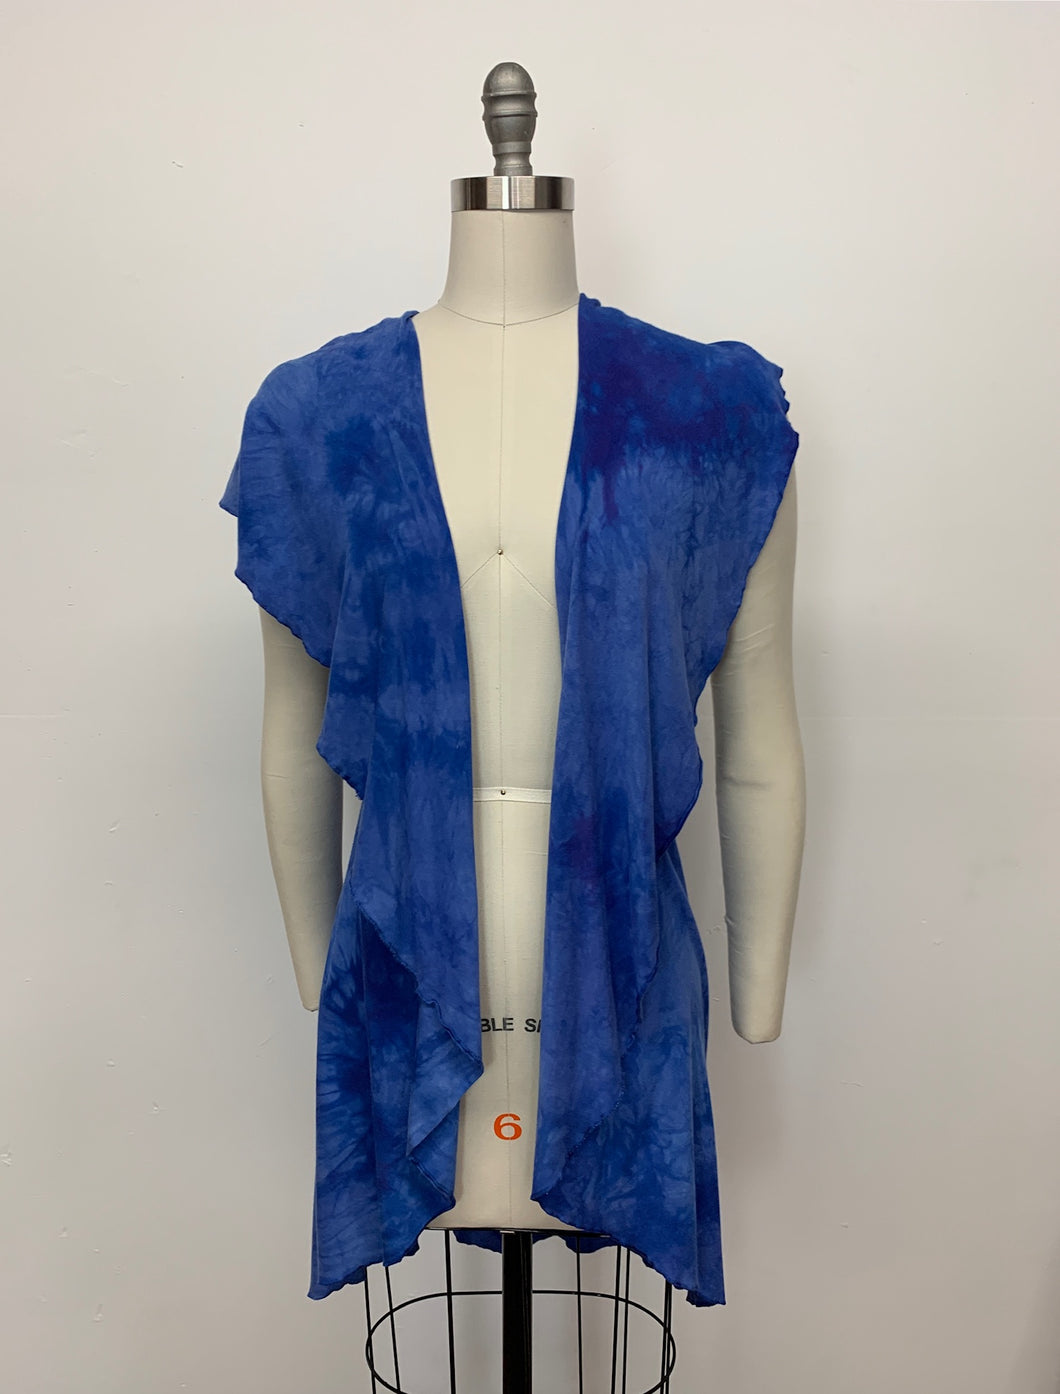 CHLOE VEST in Morning Glory Variegated